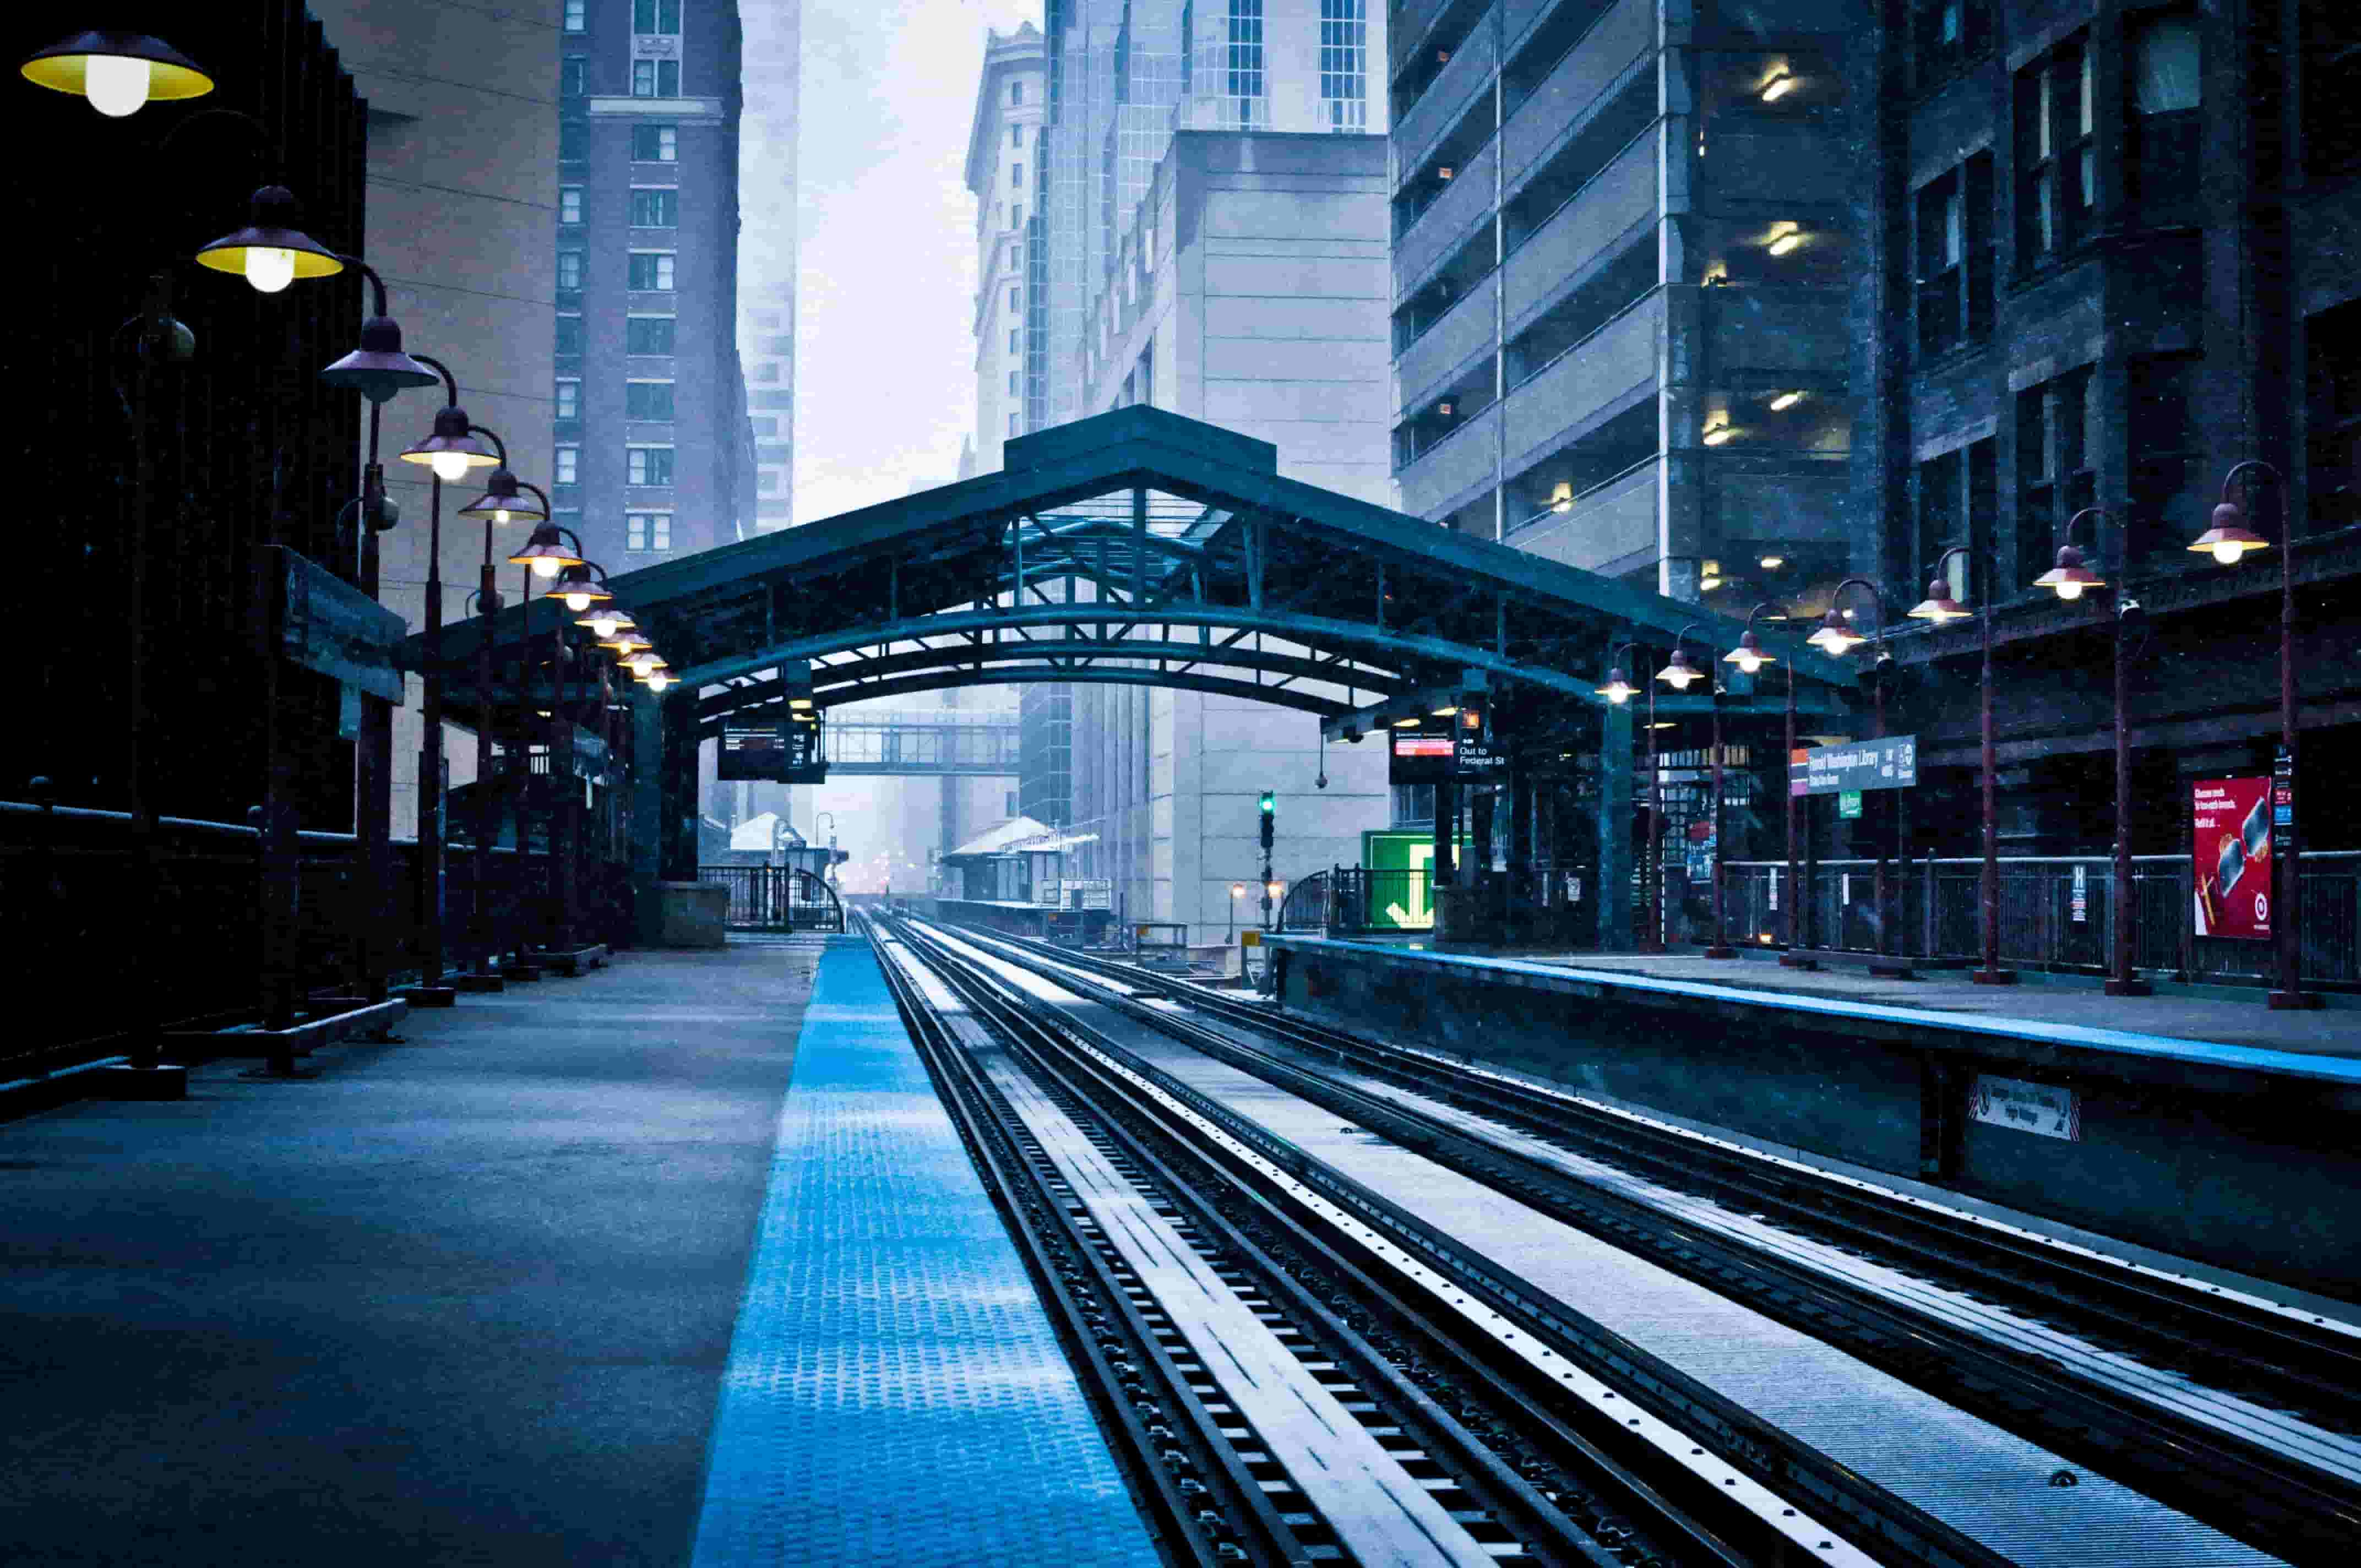 Elevated train station in Chicago in winter